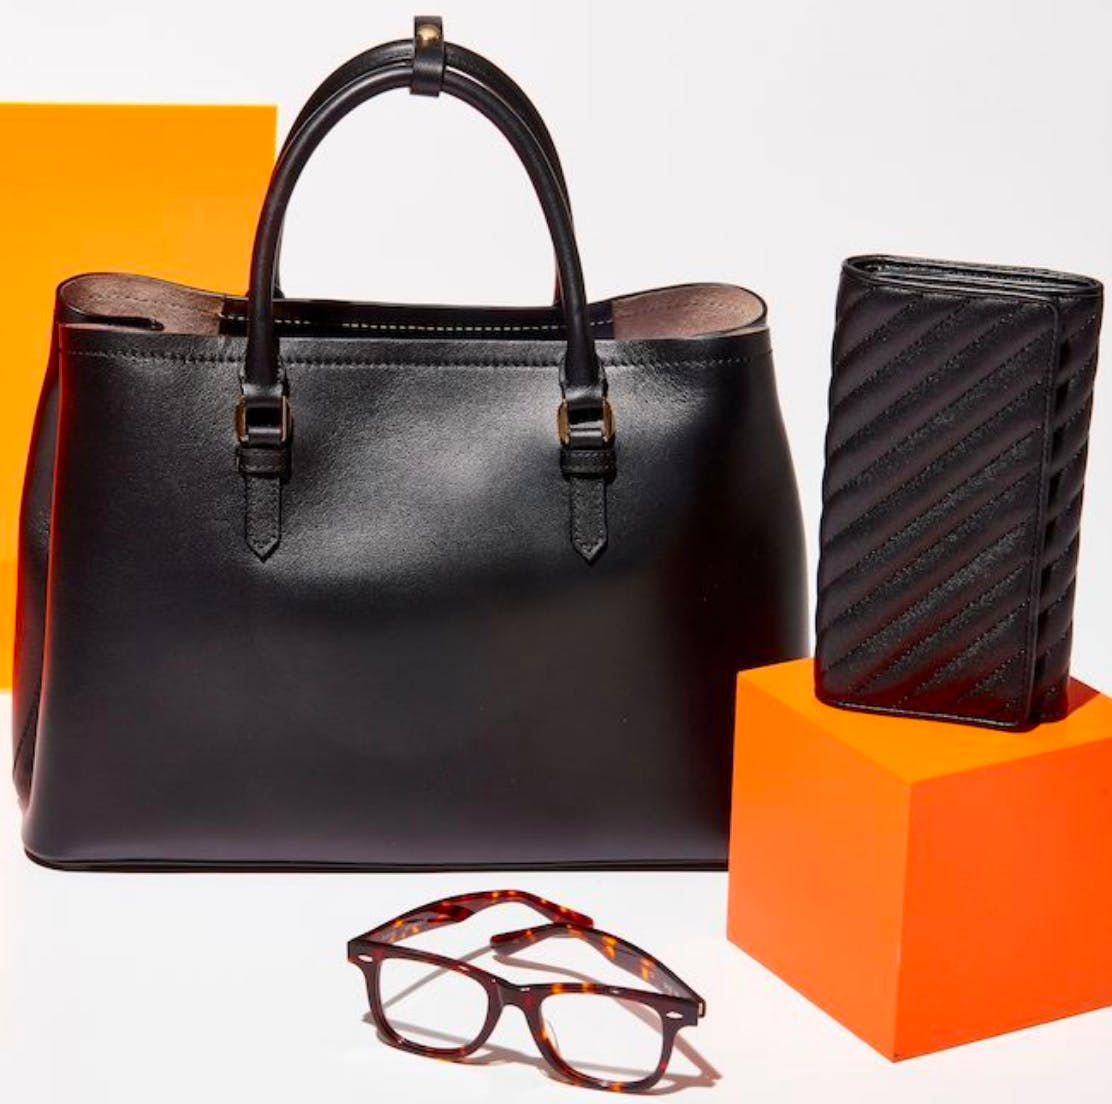 51df7acf073a Italic - Marketplace for unbranded luxury goods